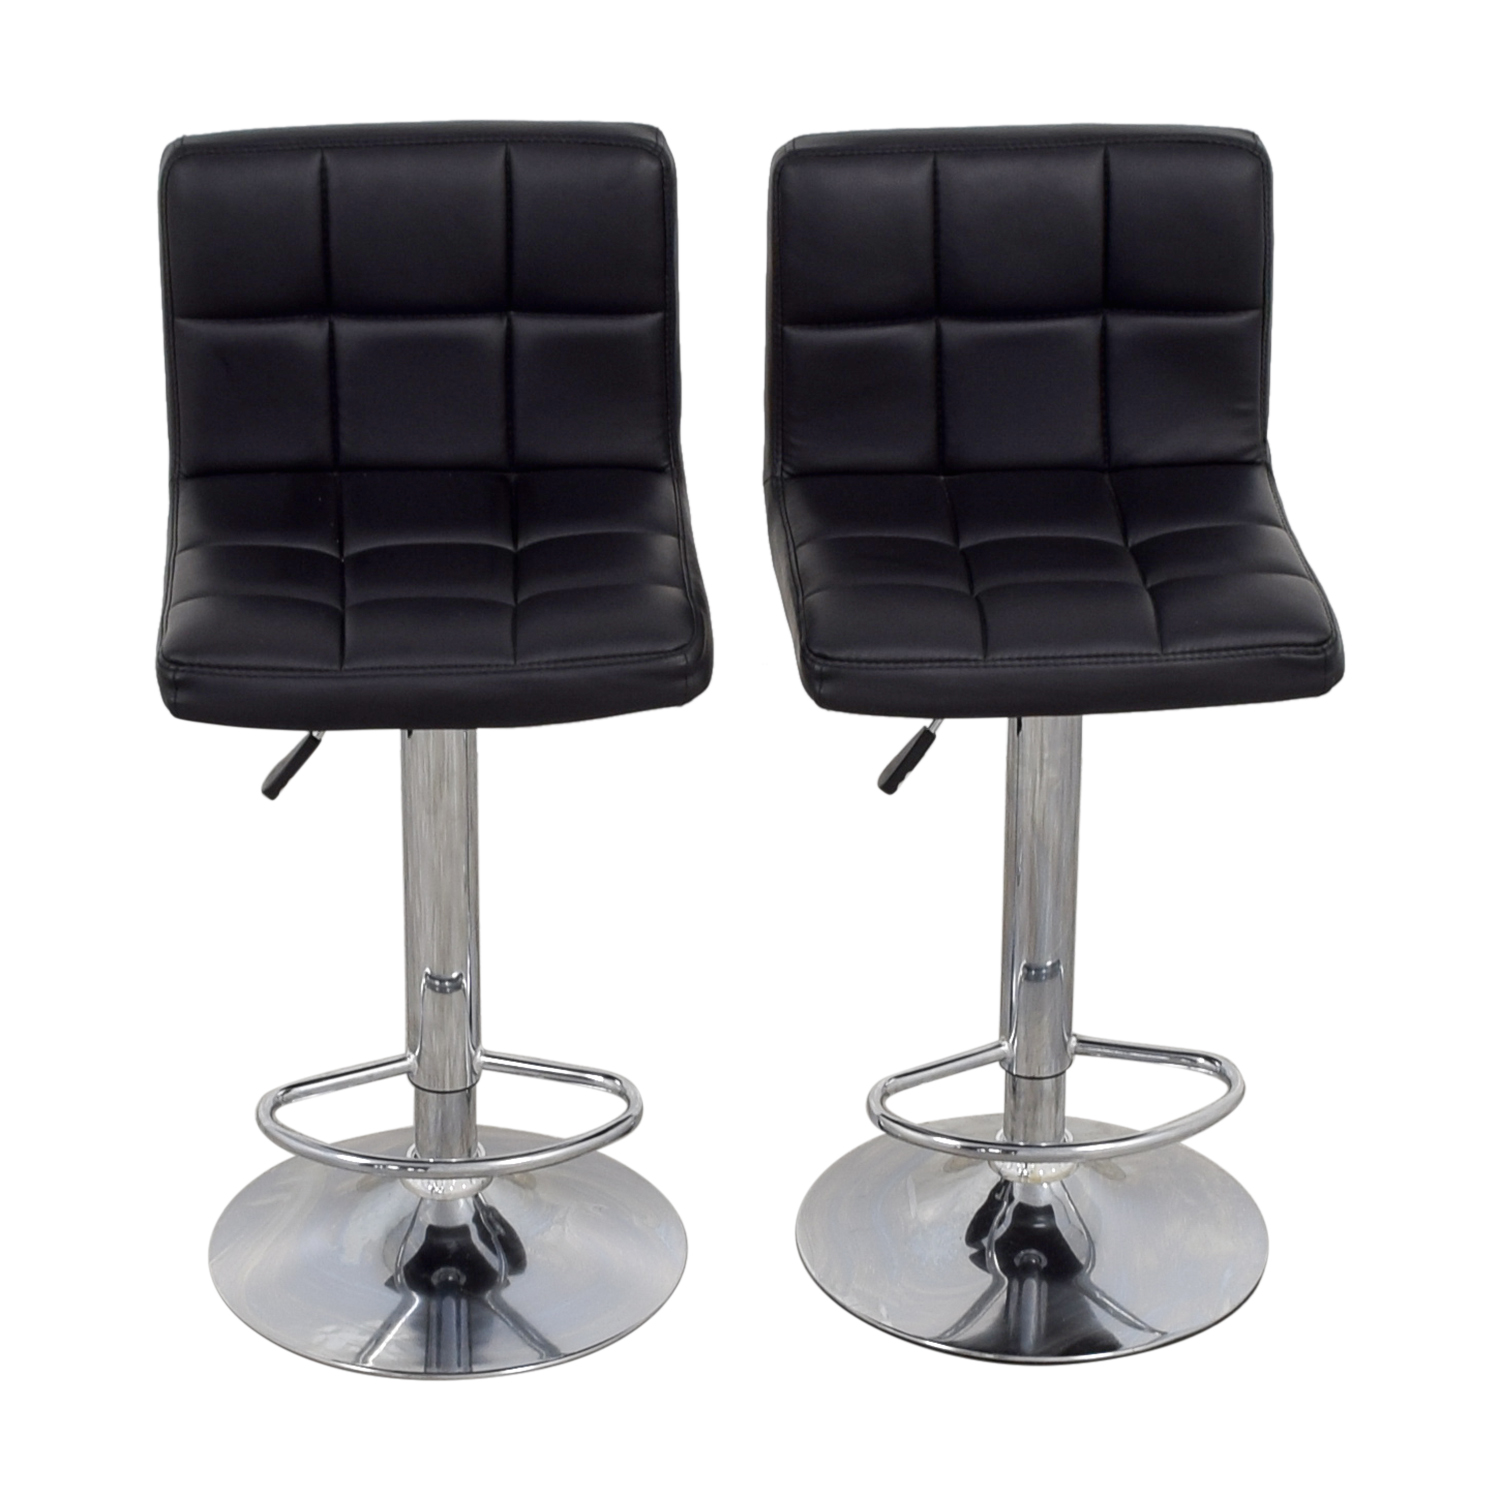 Homall Adjustable Swivel Black Bonded Leather Barstools / Chairs